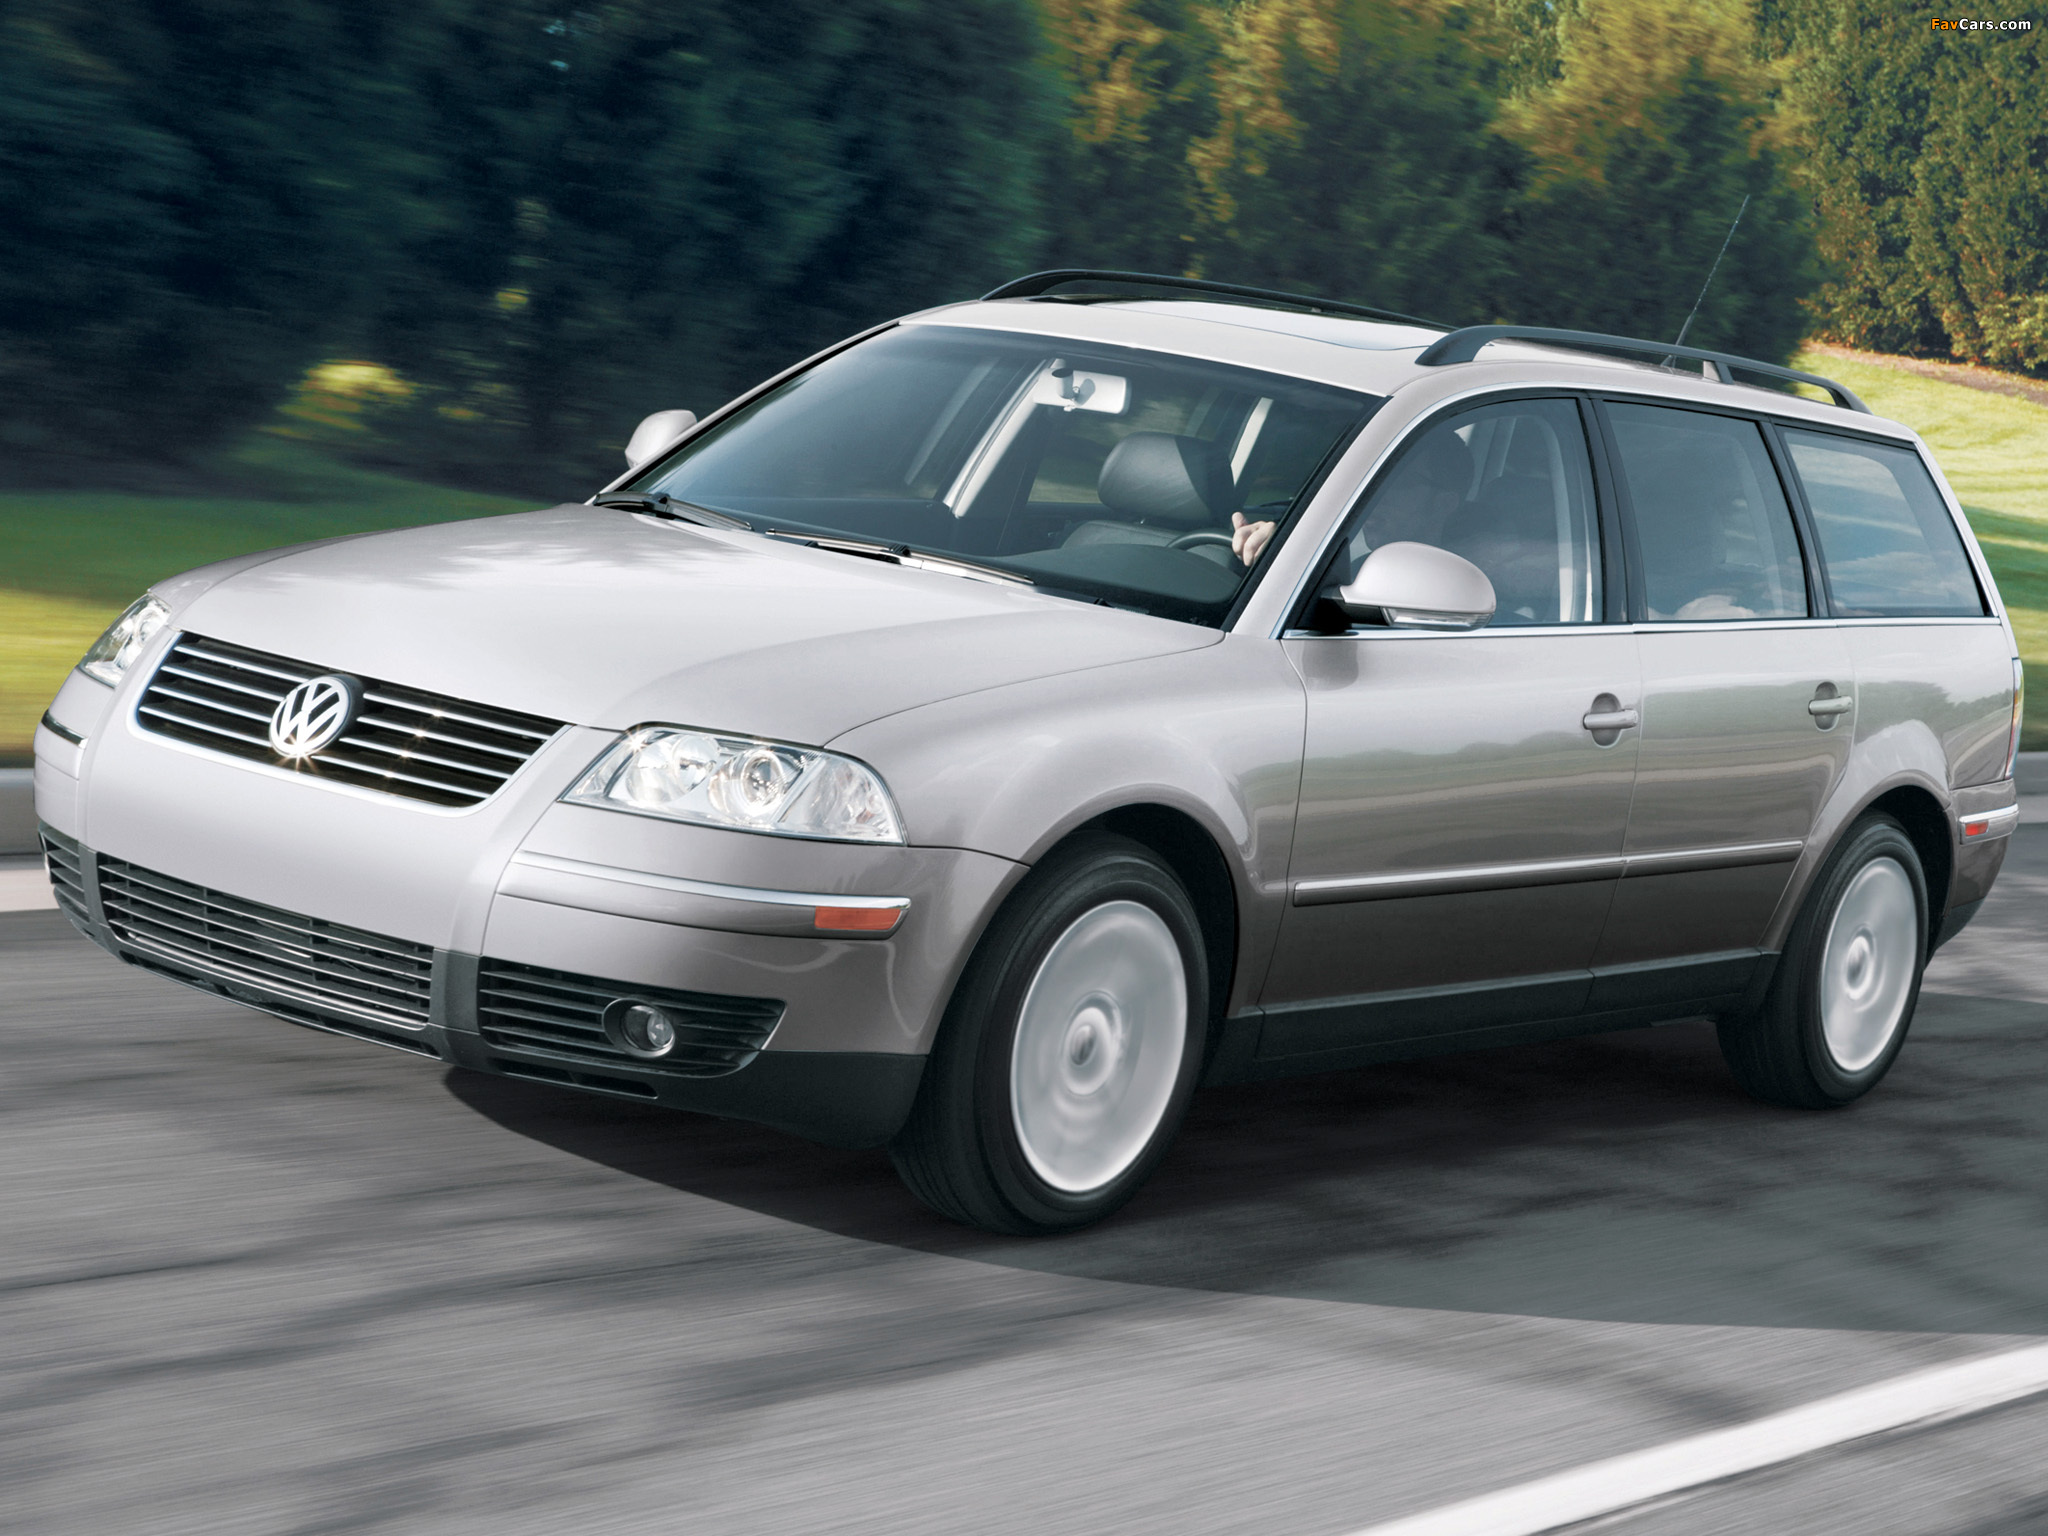 2000 Volkswagen Passat | Car Photos Catalog 2019